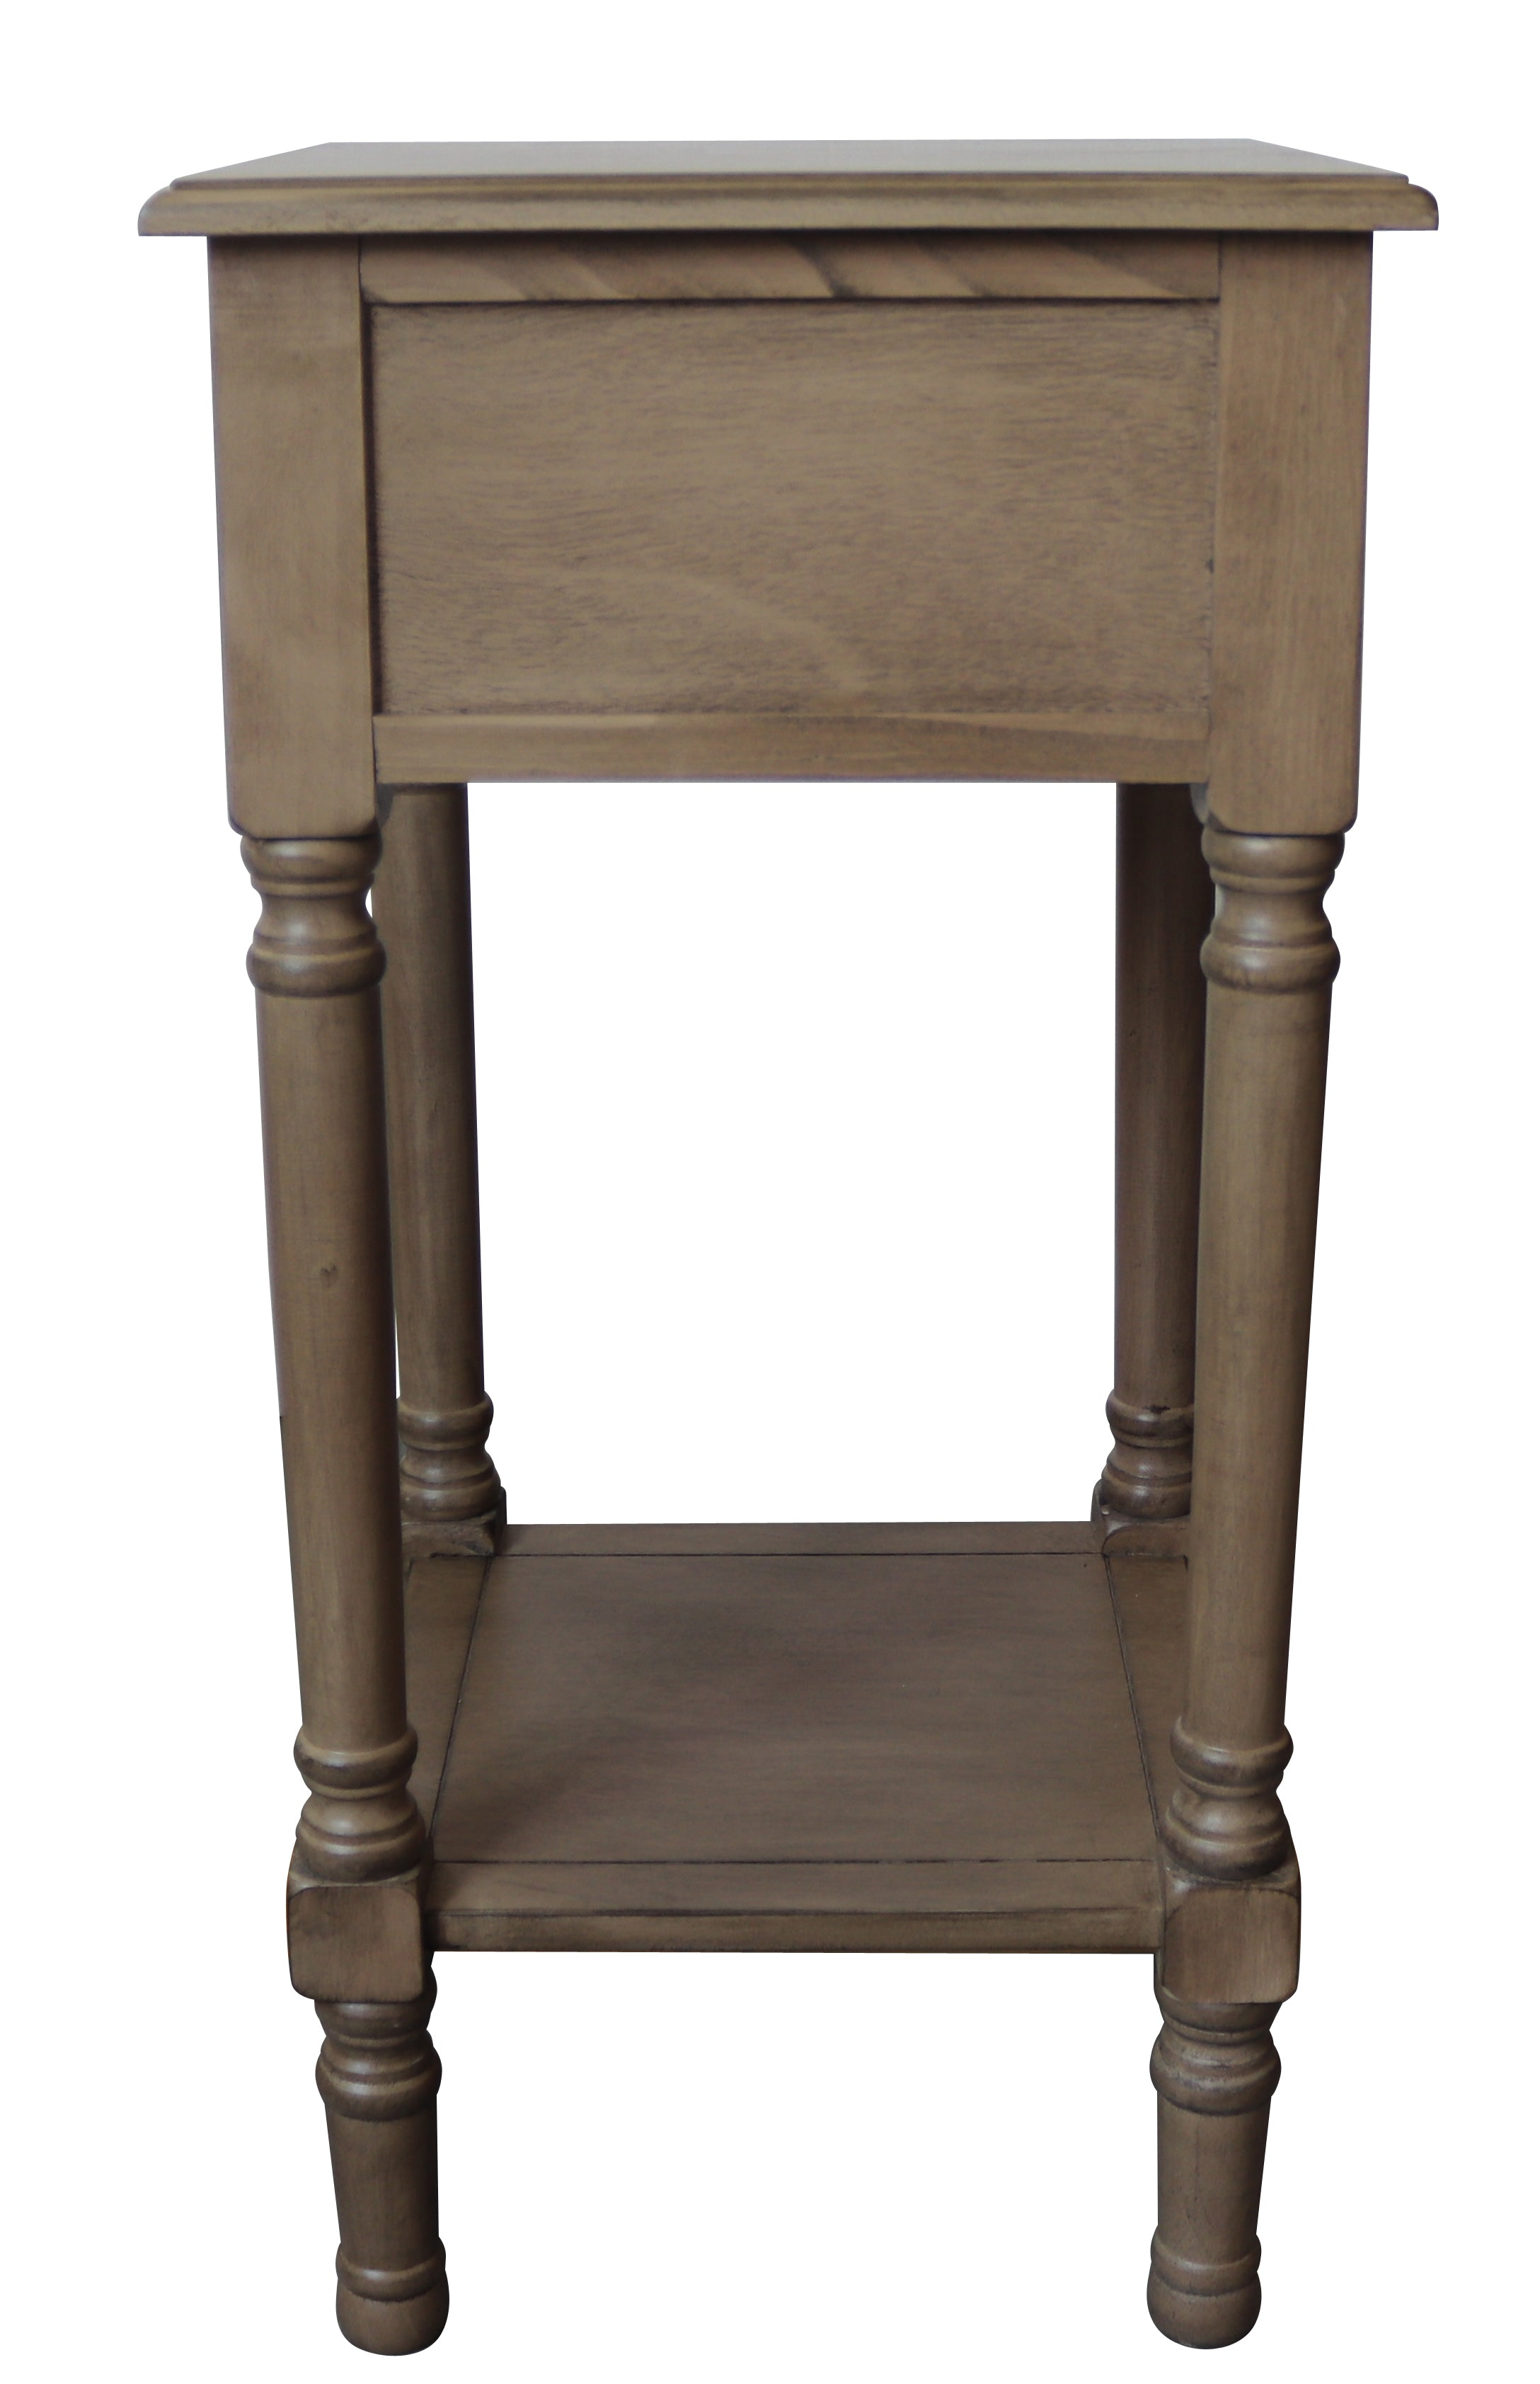 Brookdale End Table With Drawer 28 1 4 Inch Tall 14 1 4